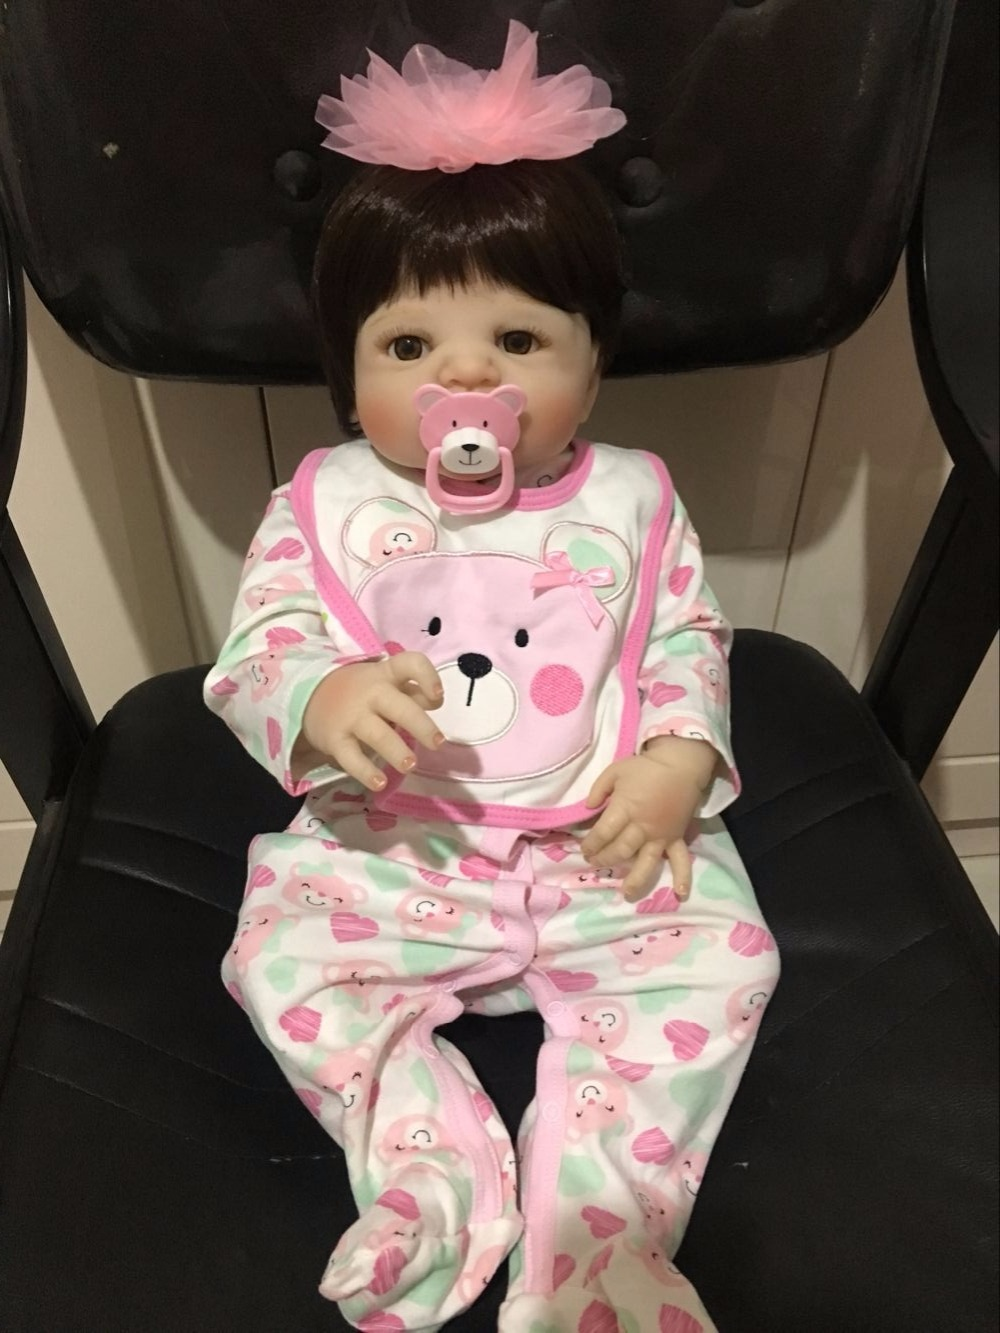 55cm Full Silicone Body Reborn Baby Doll Toy Newborn Princess Toddler Babies Doll Girl Brinquedos Bathe Toy Play House Toy боди playtoday боди